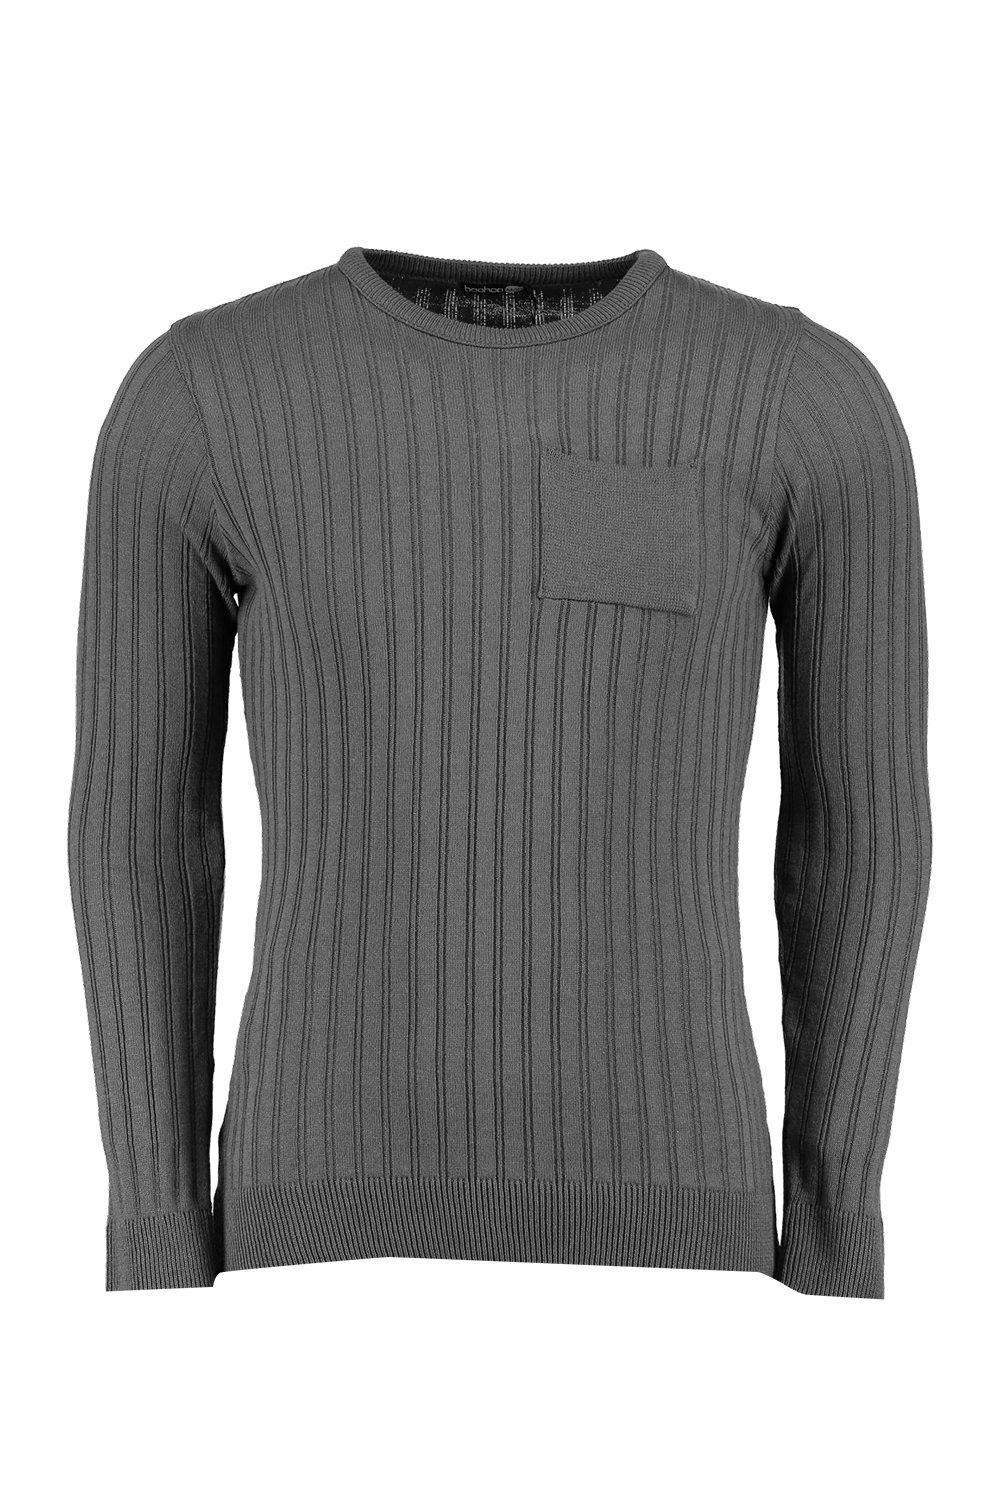 boohooMAN charcoal Knitted Crew Neck Jumper With Patch Pocket